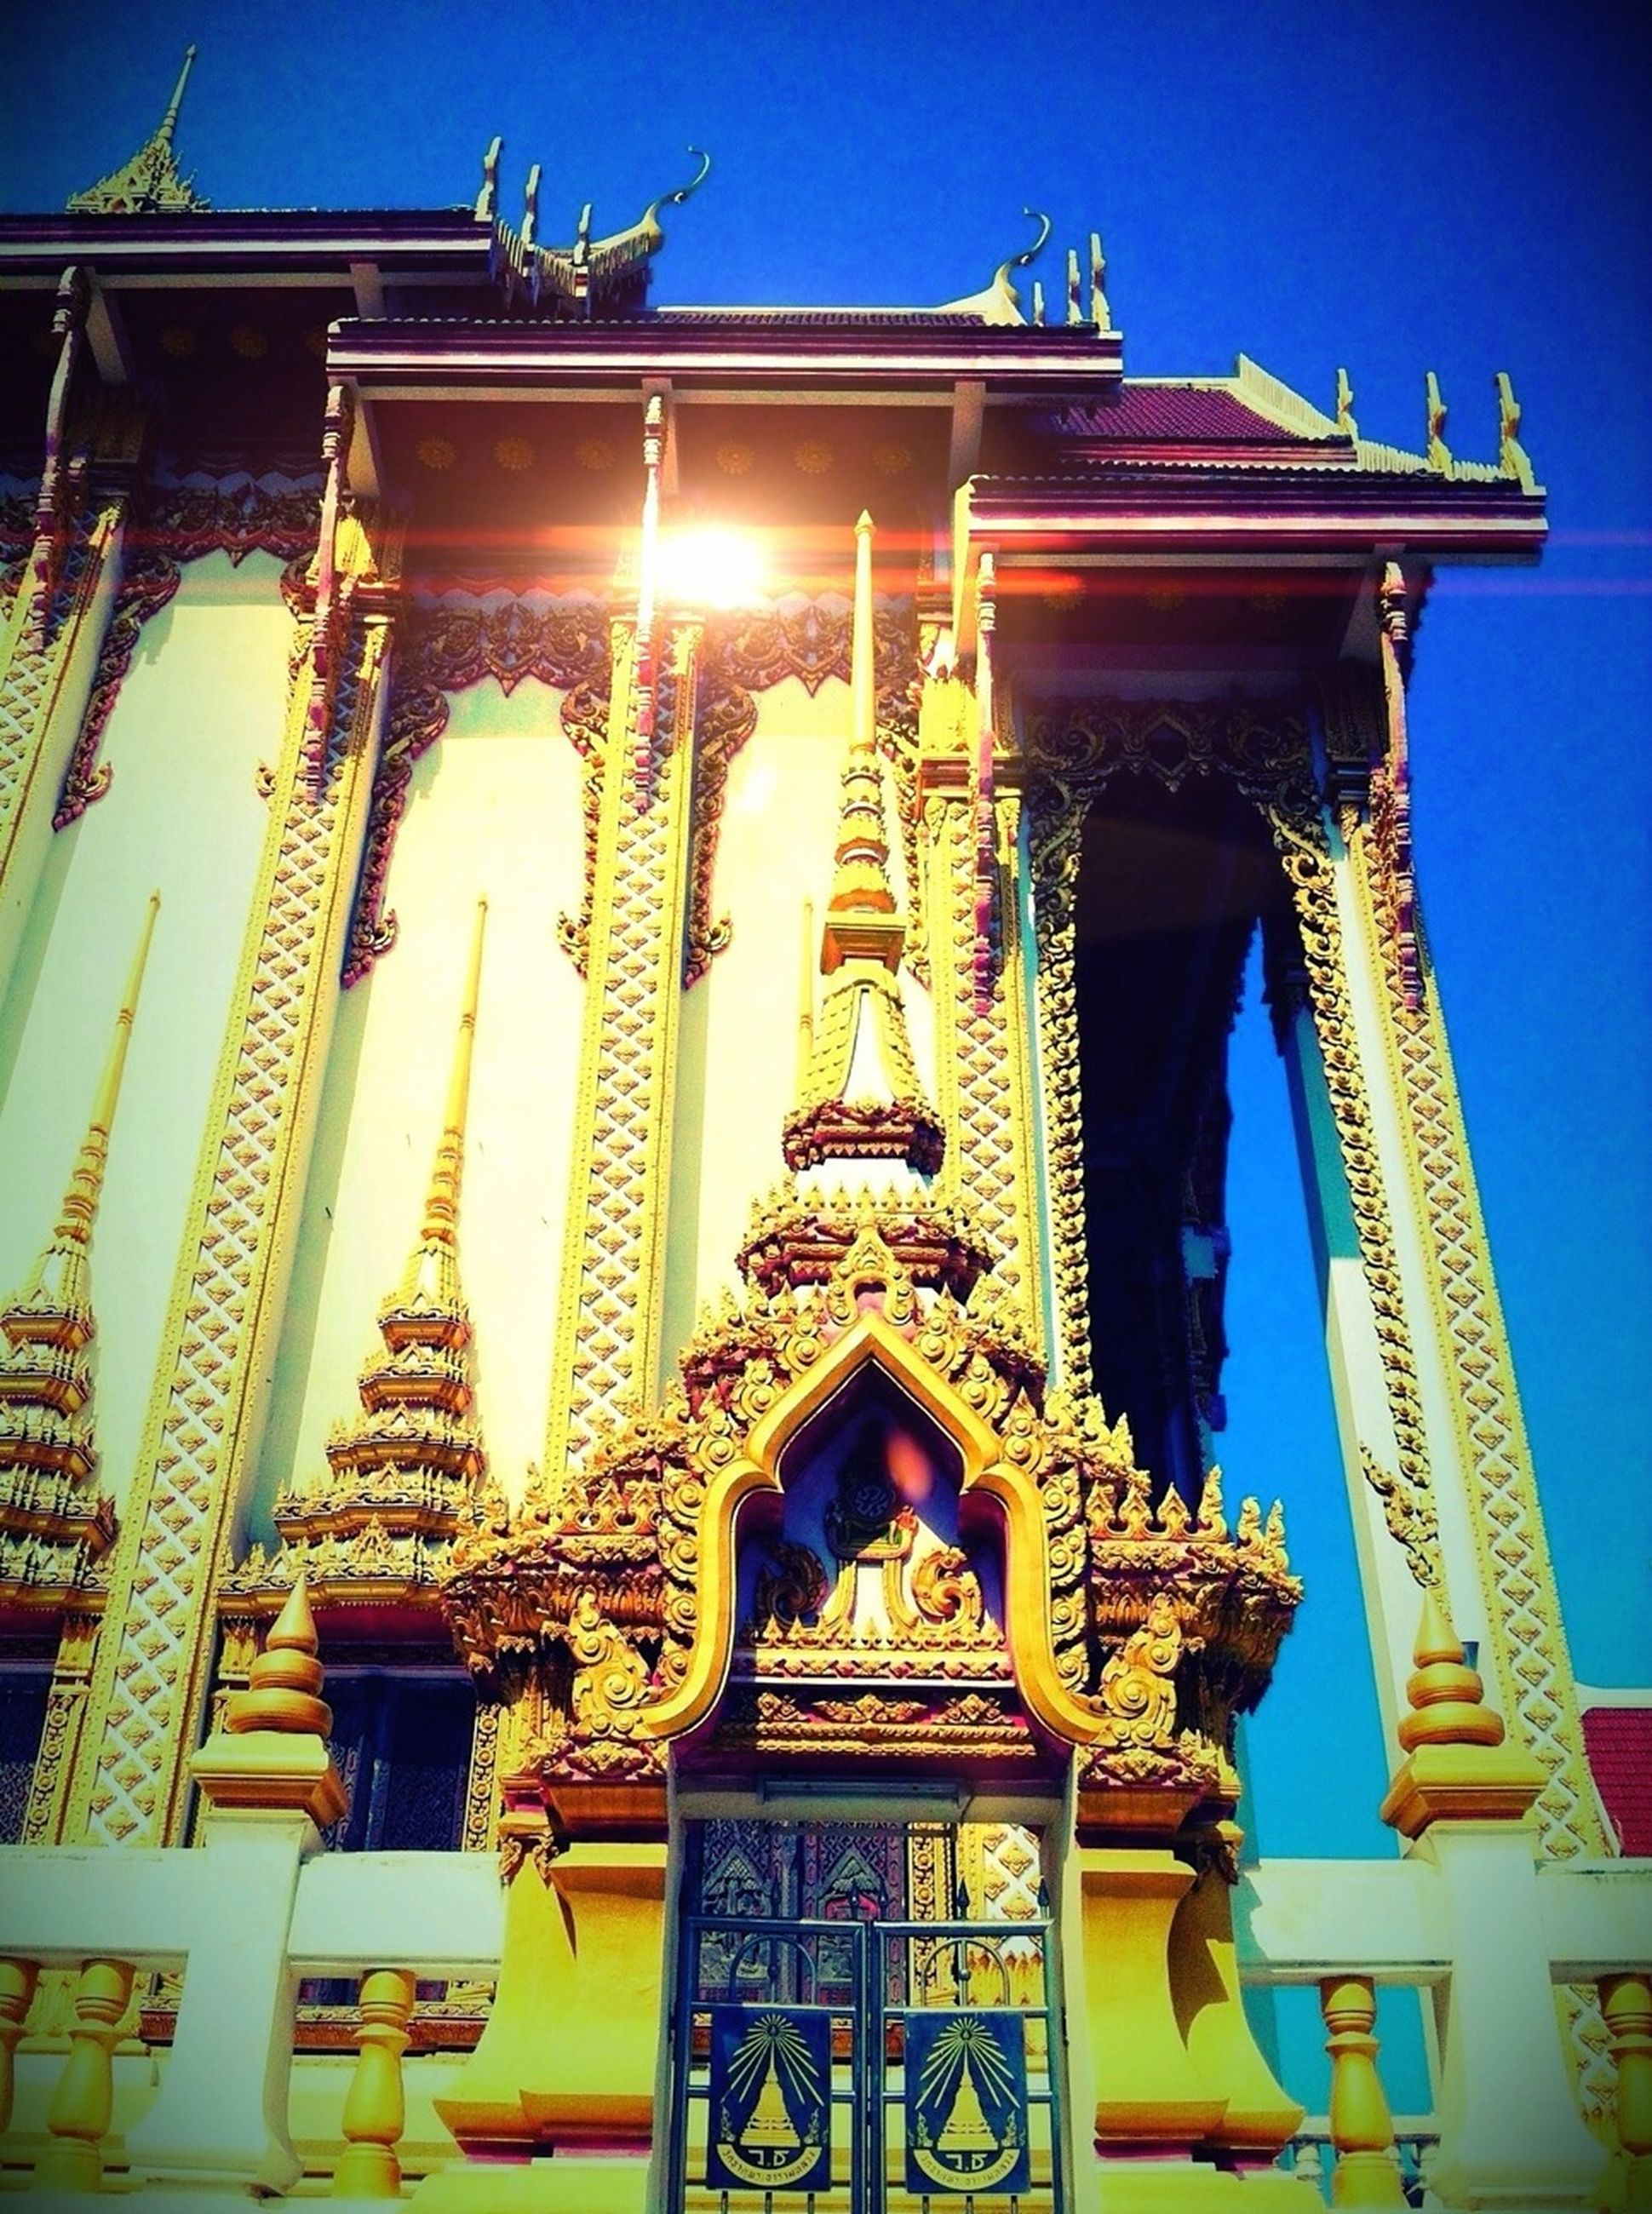 low angle view, architecture, built structure, building exterior, blue, clear sky, sky, sunlight, illuminated, ornate, art and craft, outdoors, religion, no people, spirituality, city, lighting equipment, art, place of worship, day